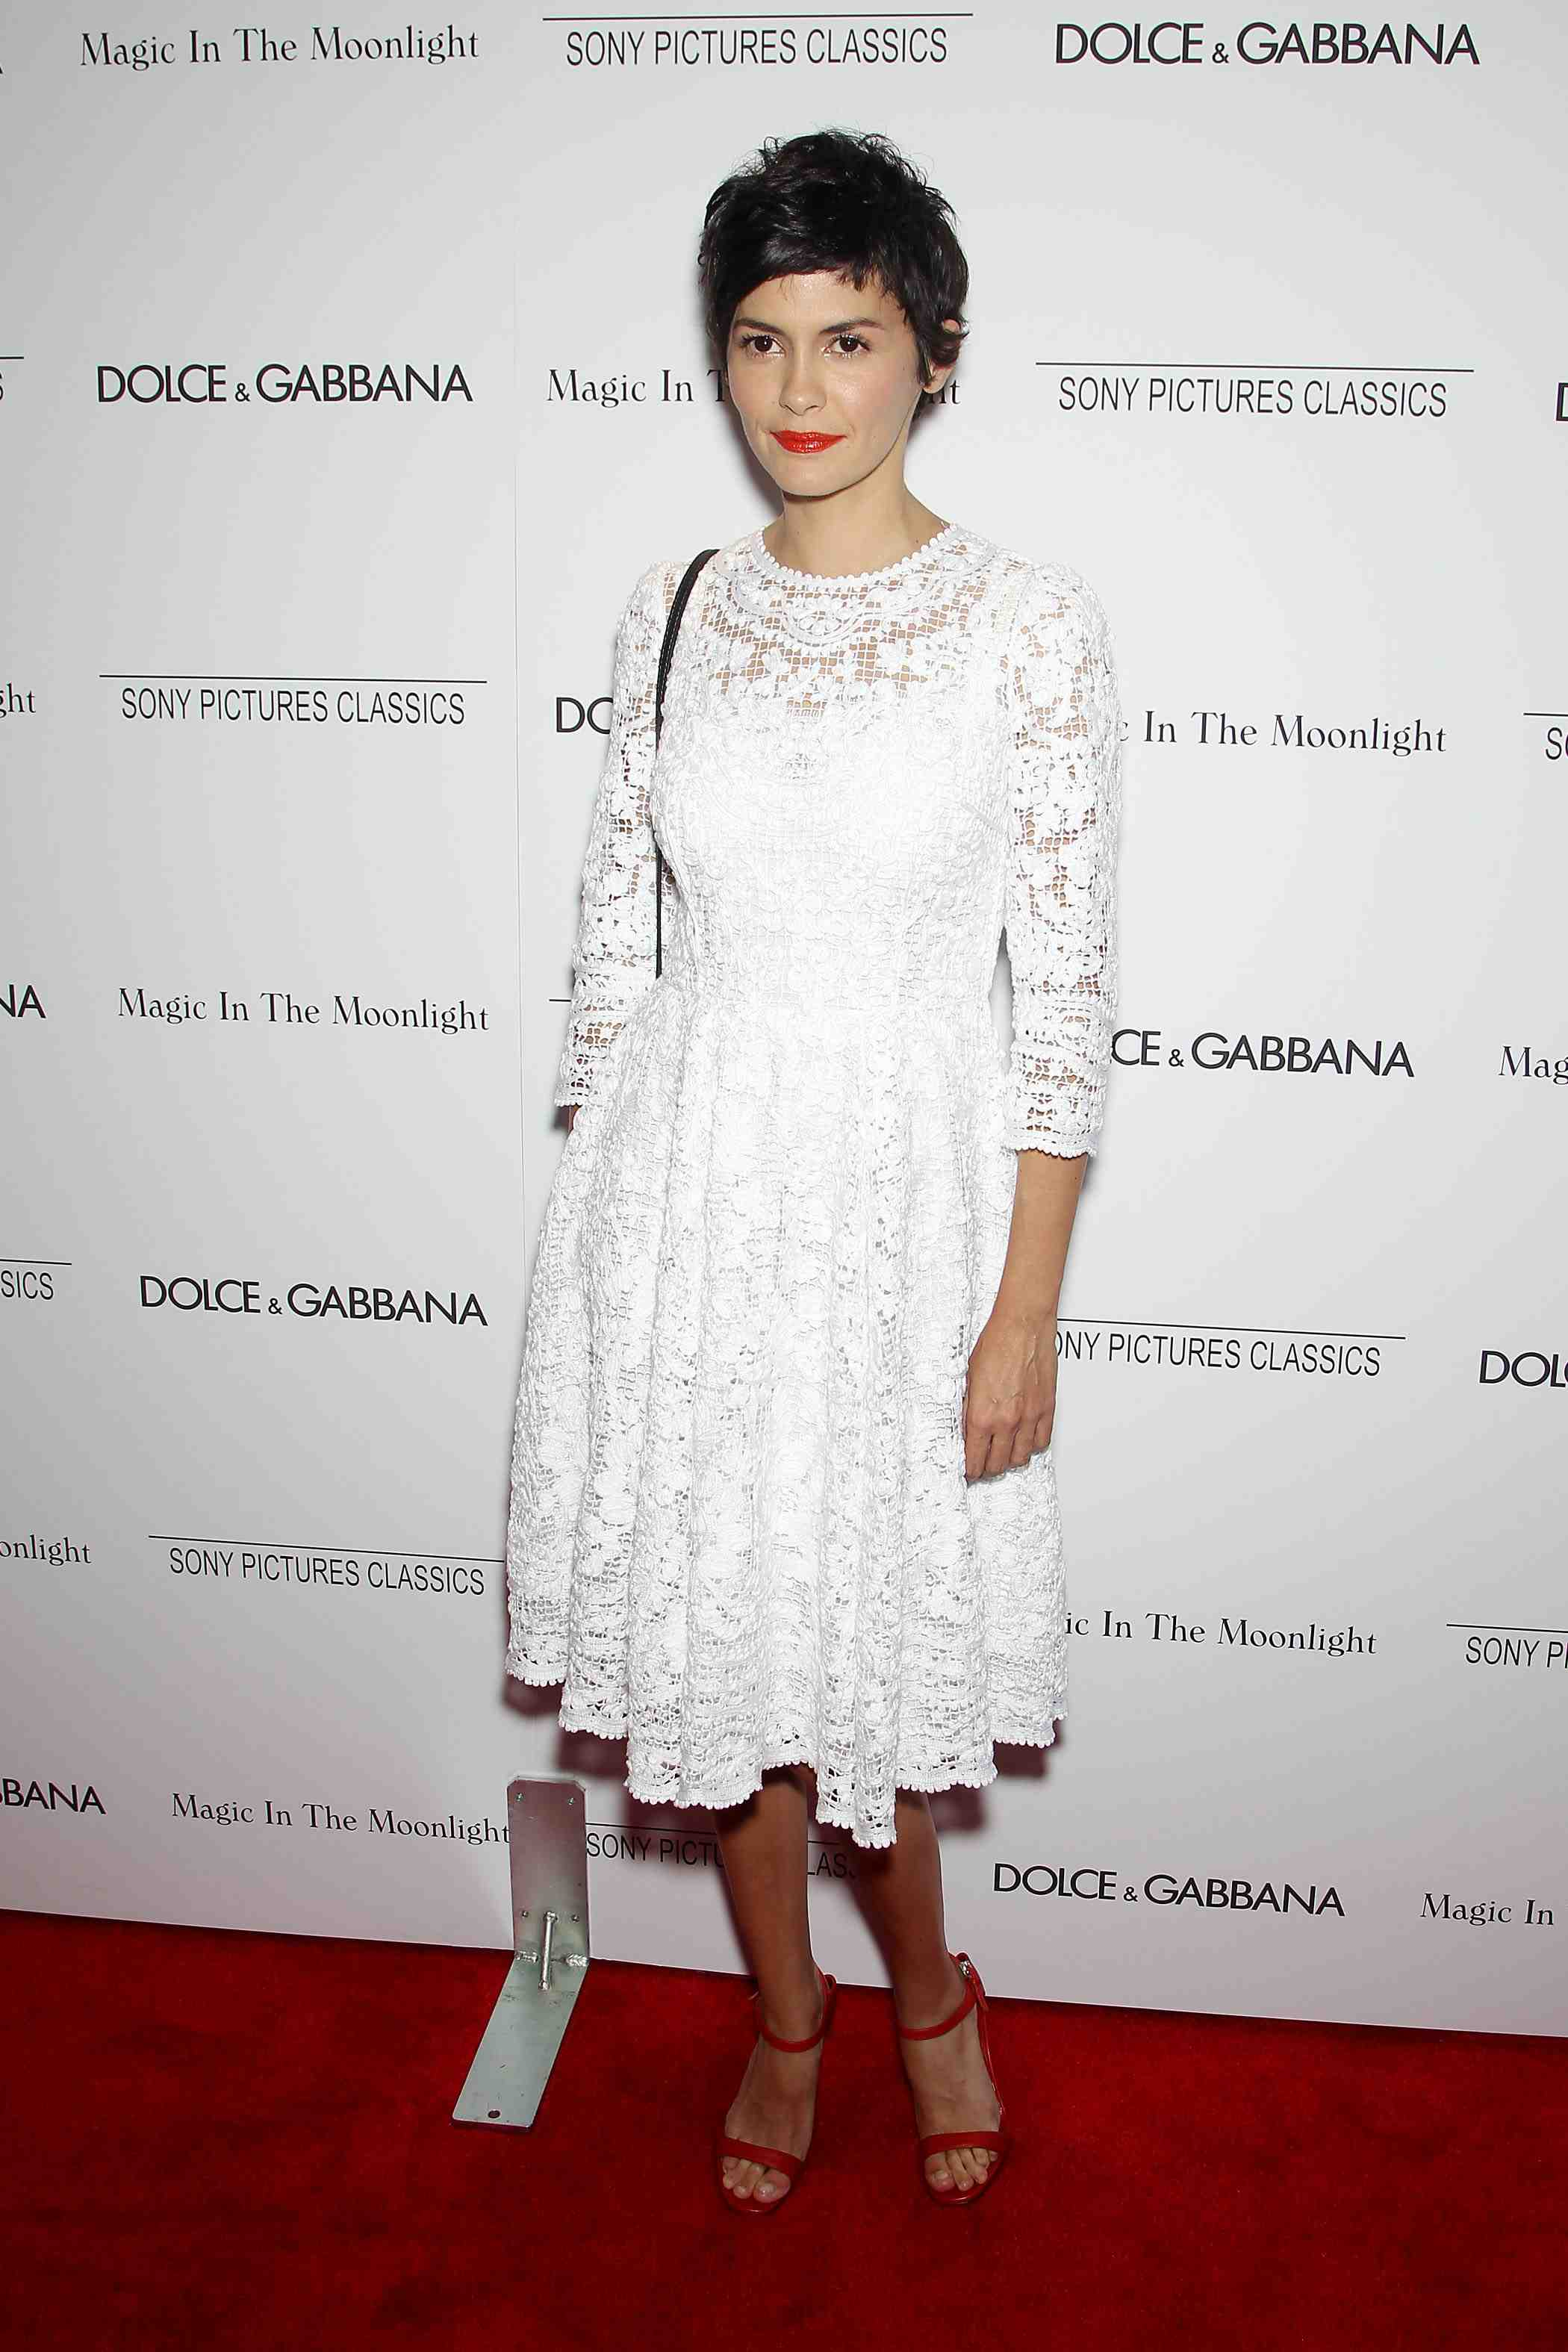 Audrey Tautou_'Magic in the Moonlight' NY Premiere_July 17 2014.jpg